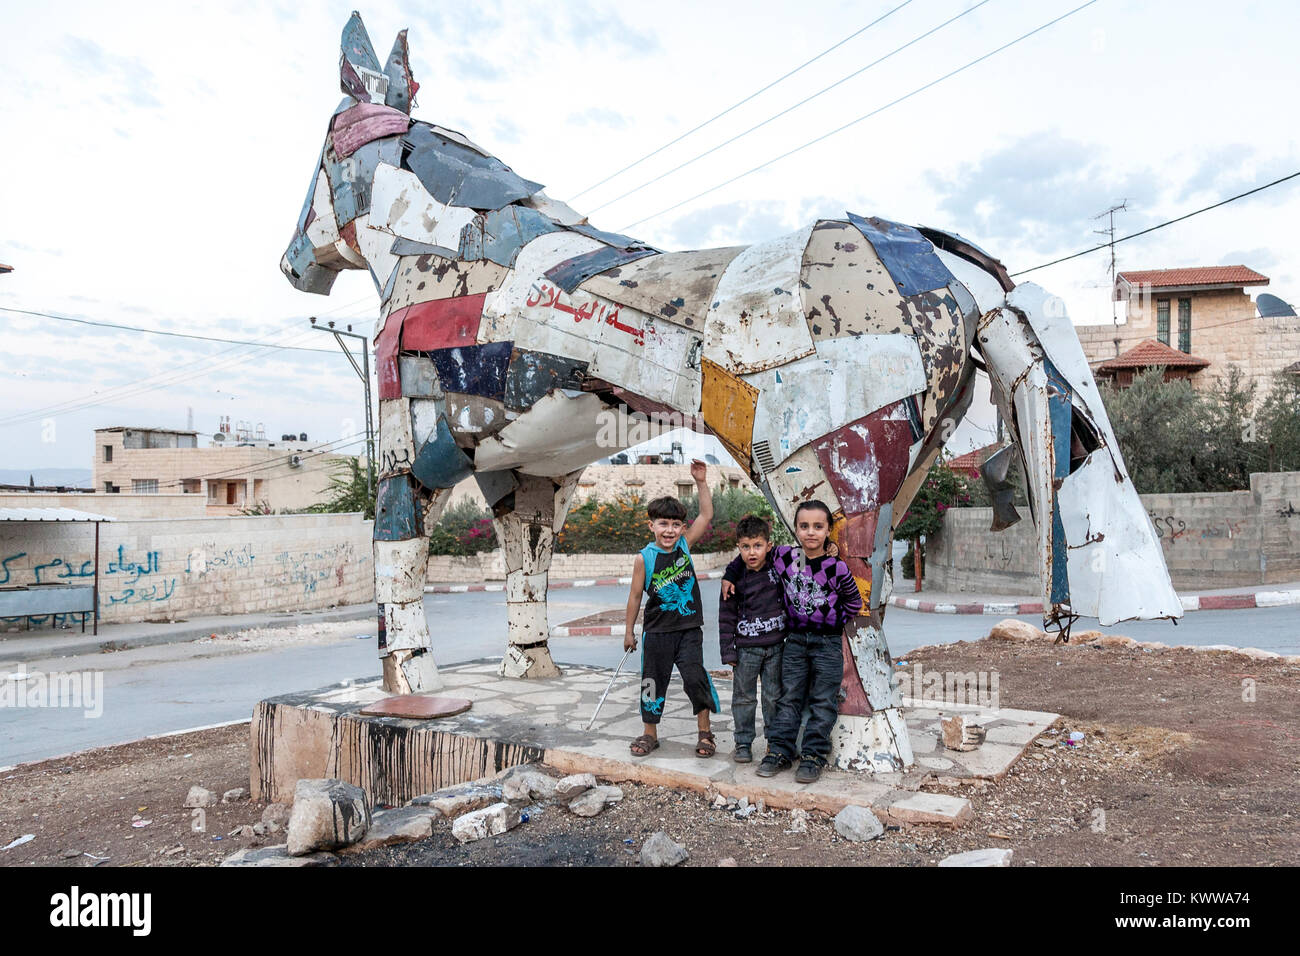 Jenin, Palestine, November 18, 2010: Palestinian children are standing in front of a horse built by German artist Stock Photo